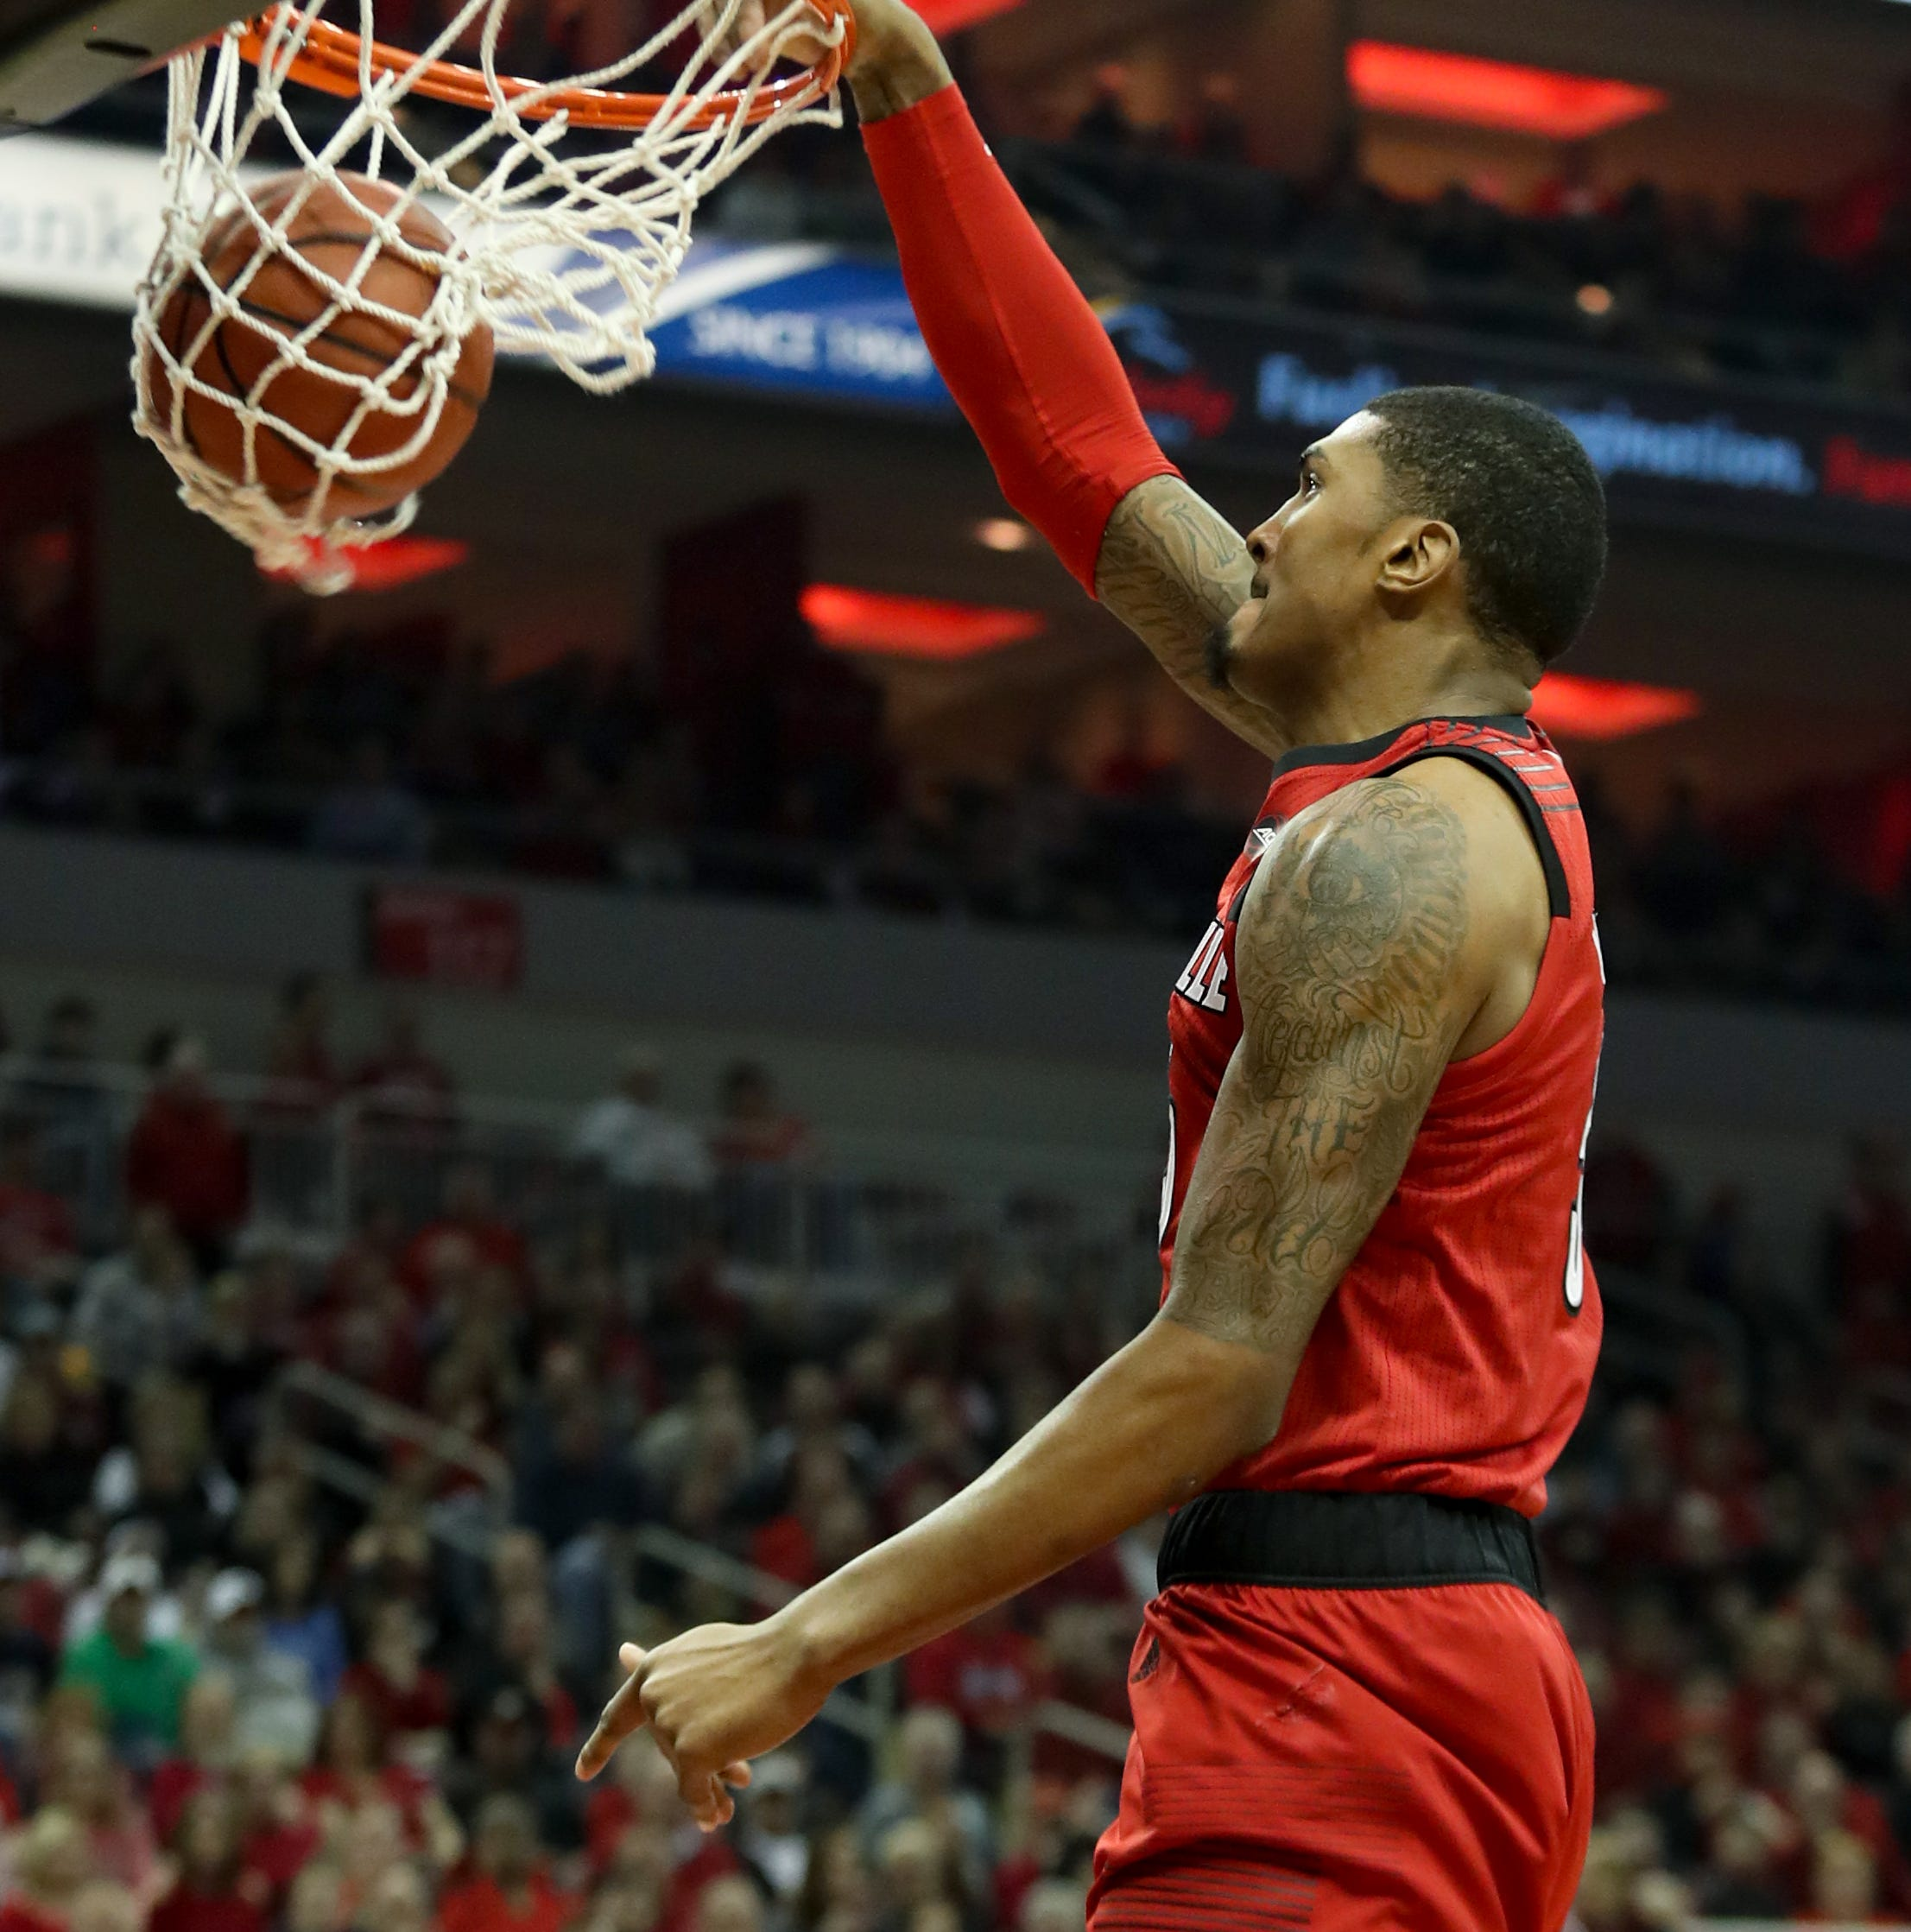 Louisville rolls over Notre Dame in home finale to end losing streak